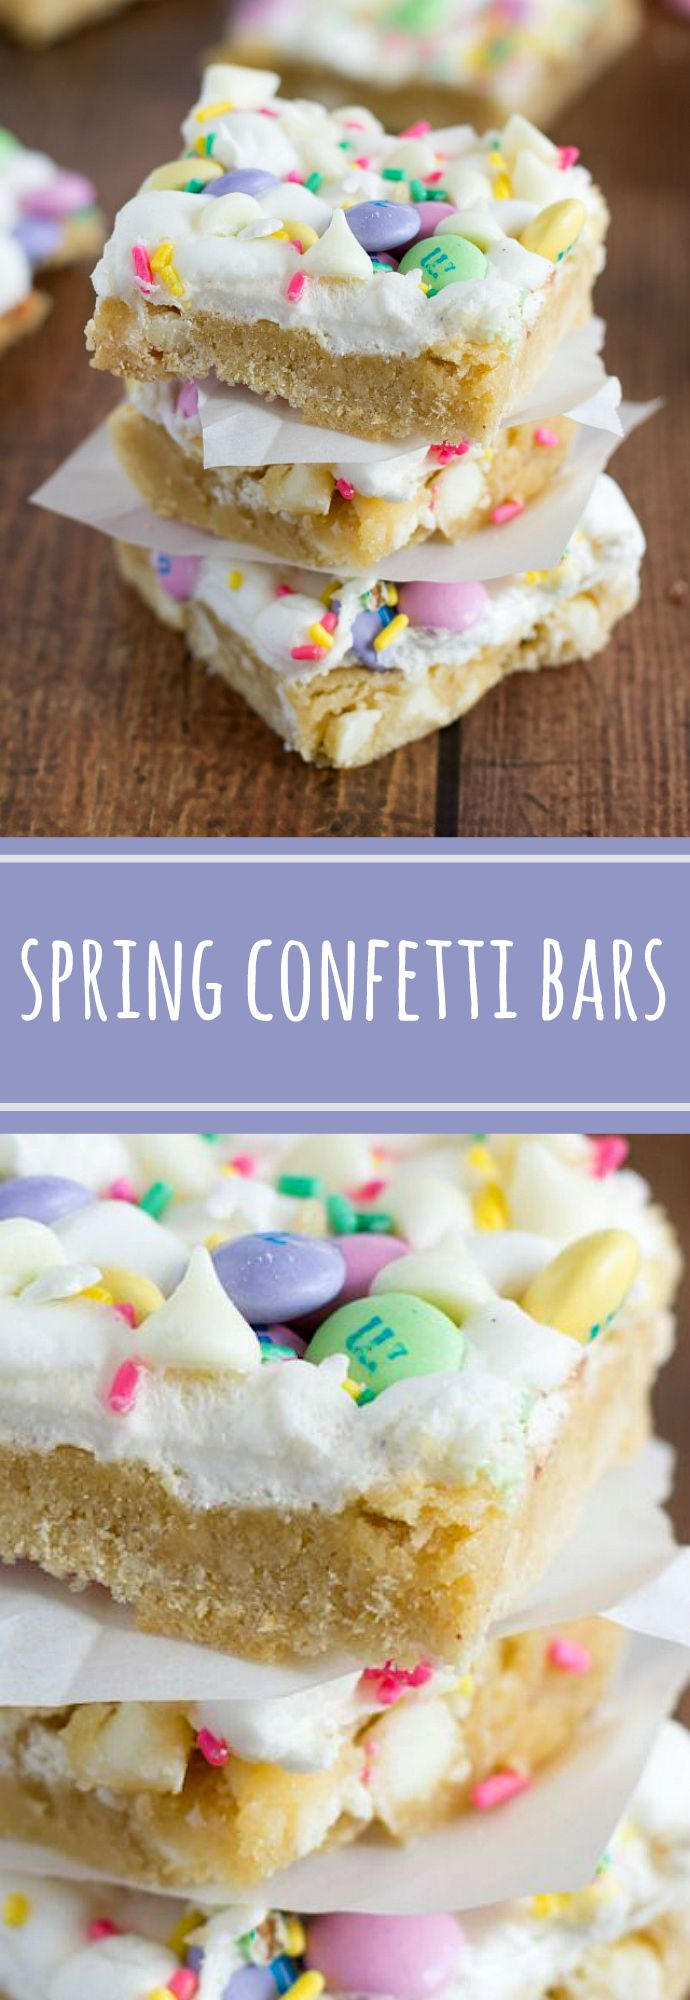 672 best images about spring easter desserts on pinterest for Good desserts for easter